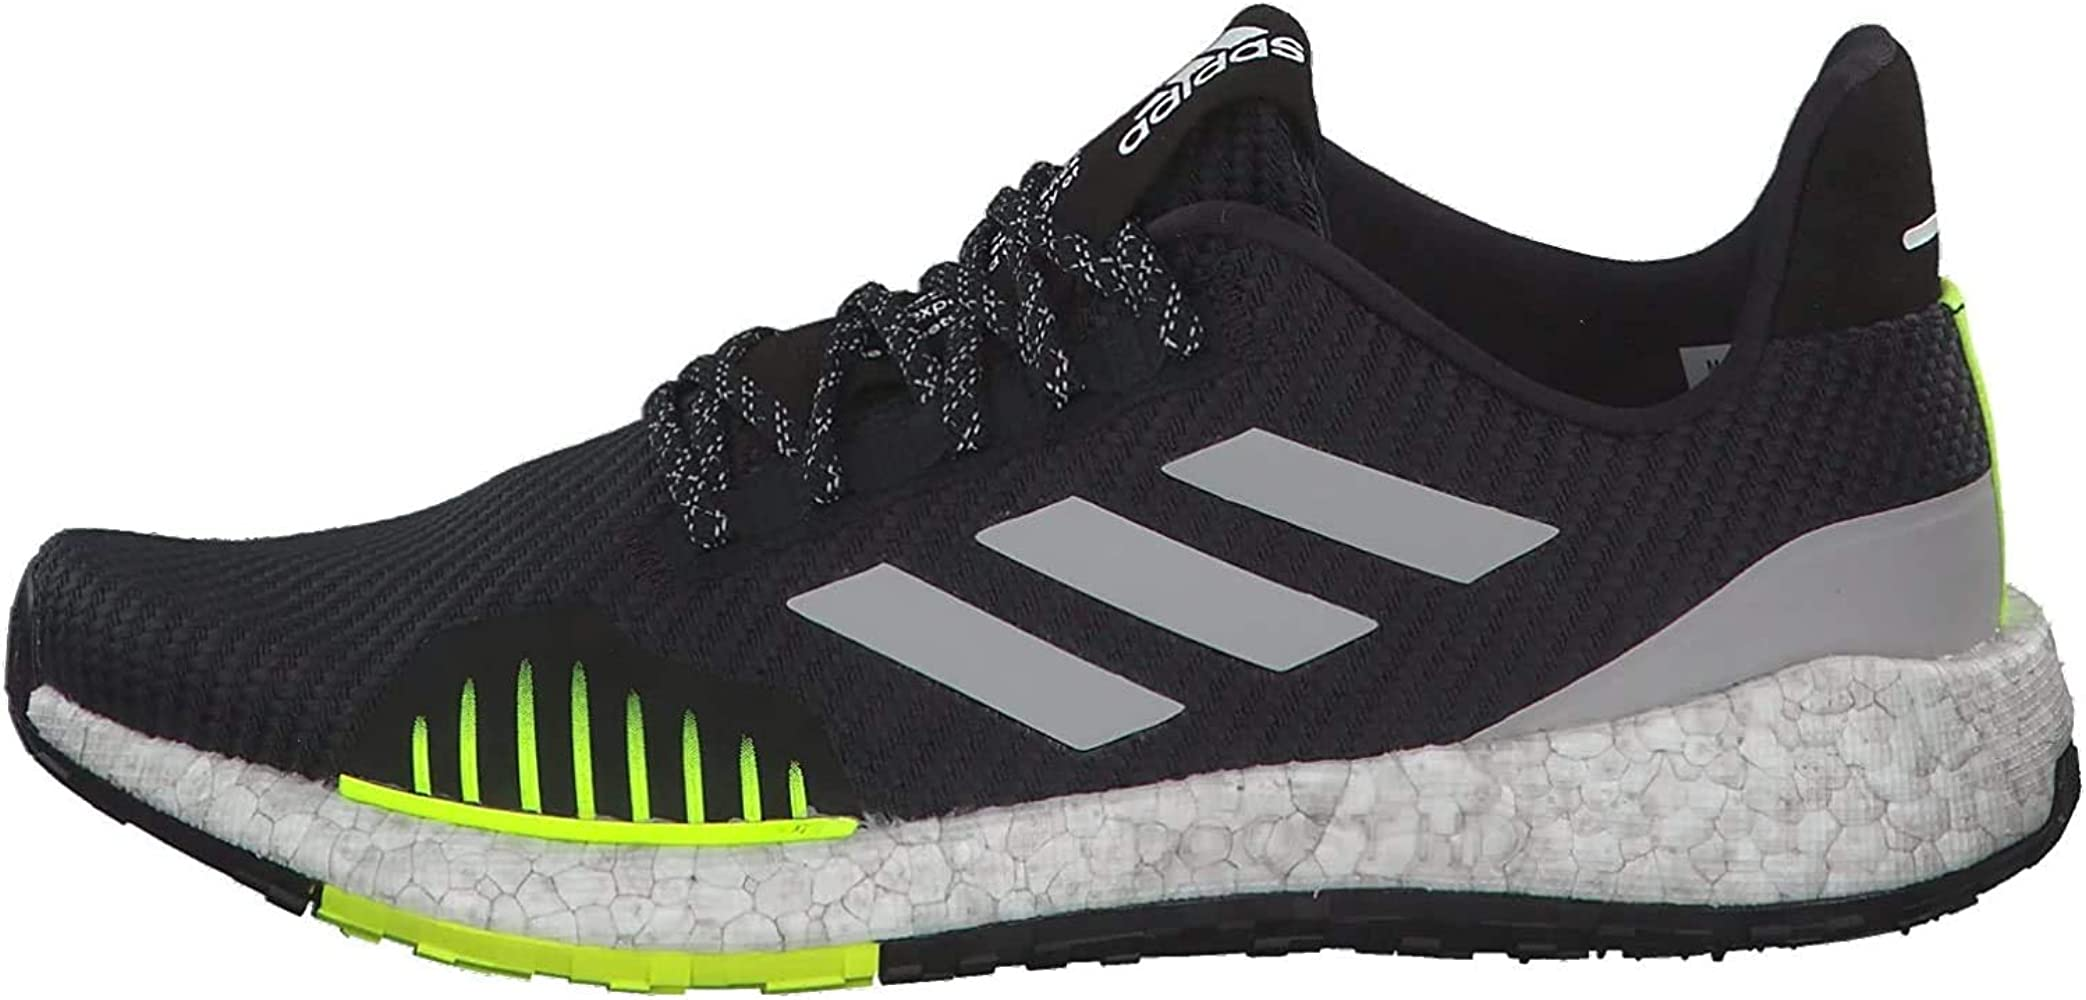 Adidas PulseBOOST HD Winter Zapatillas para Correr - AW19-40.7 ...